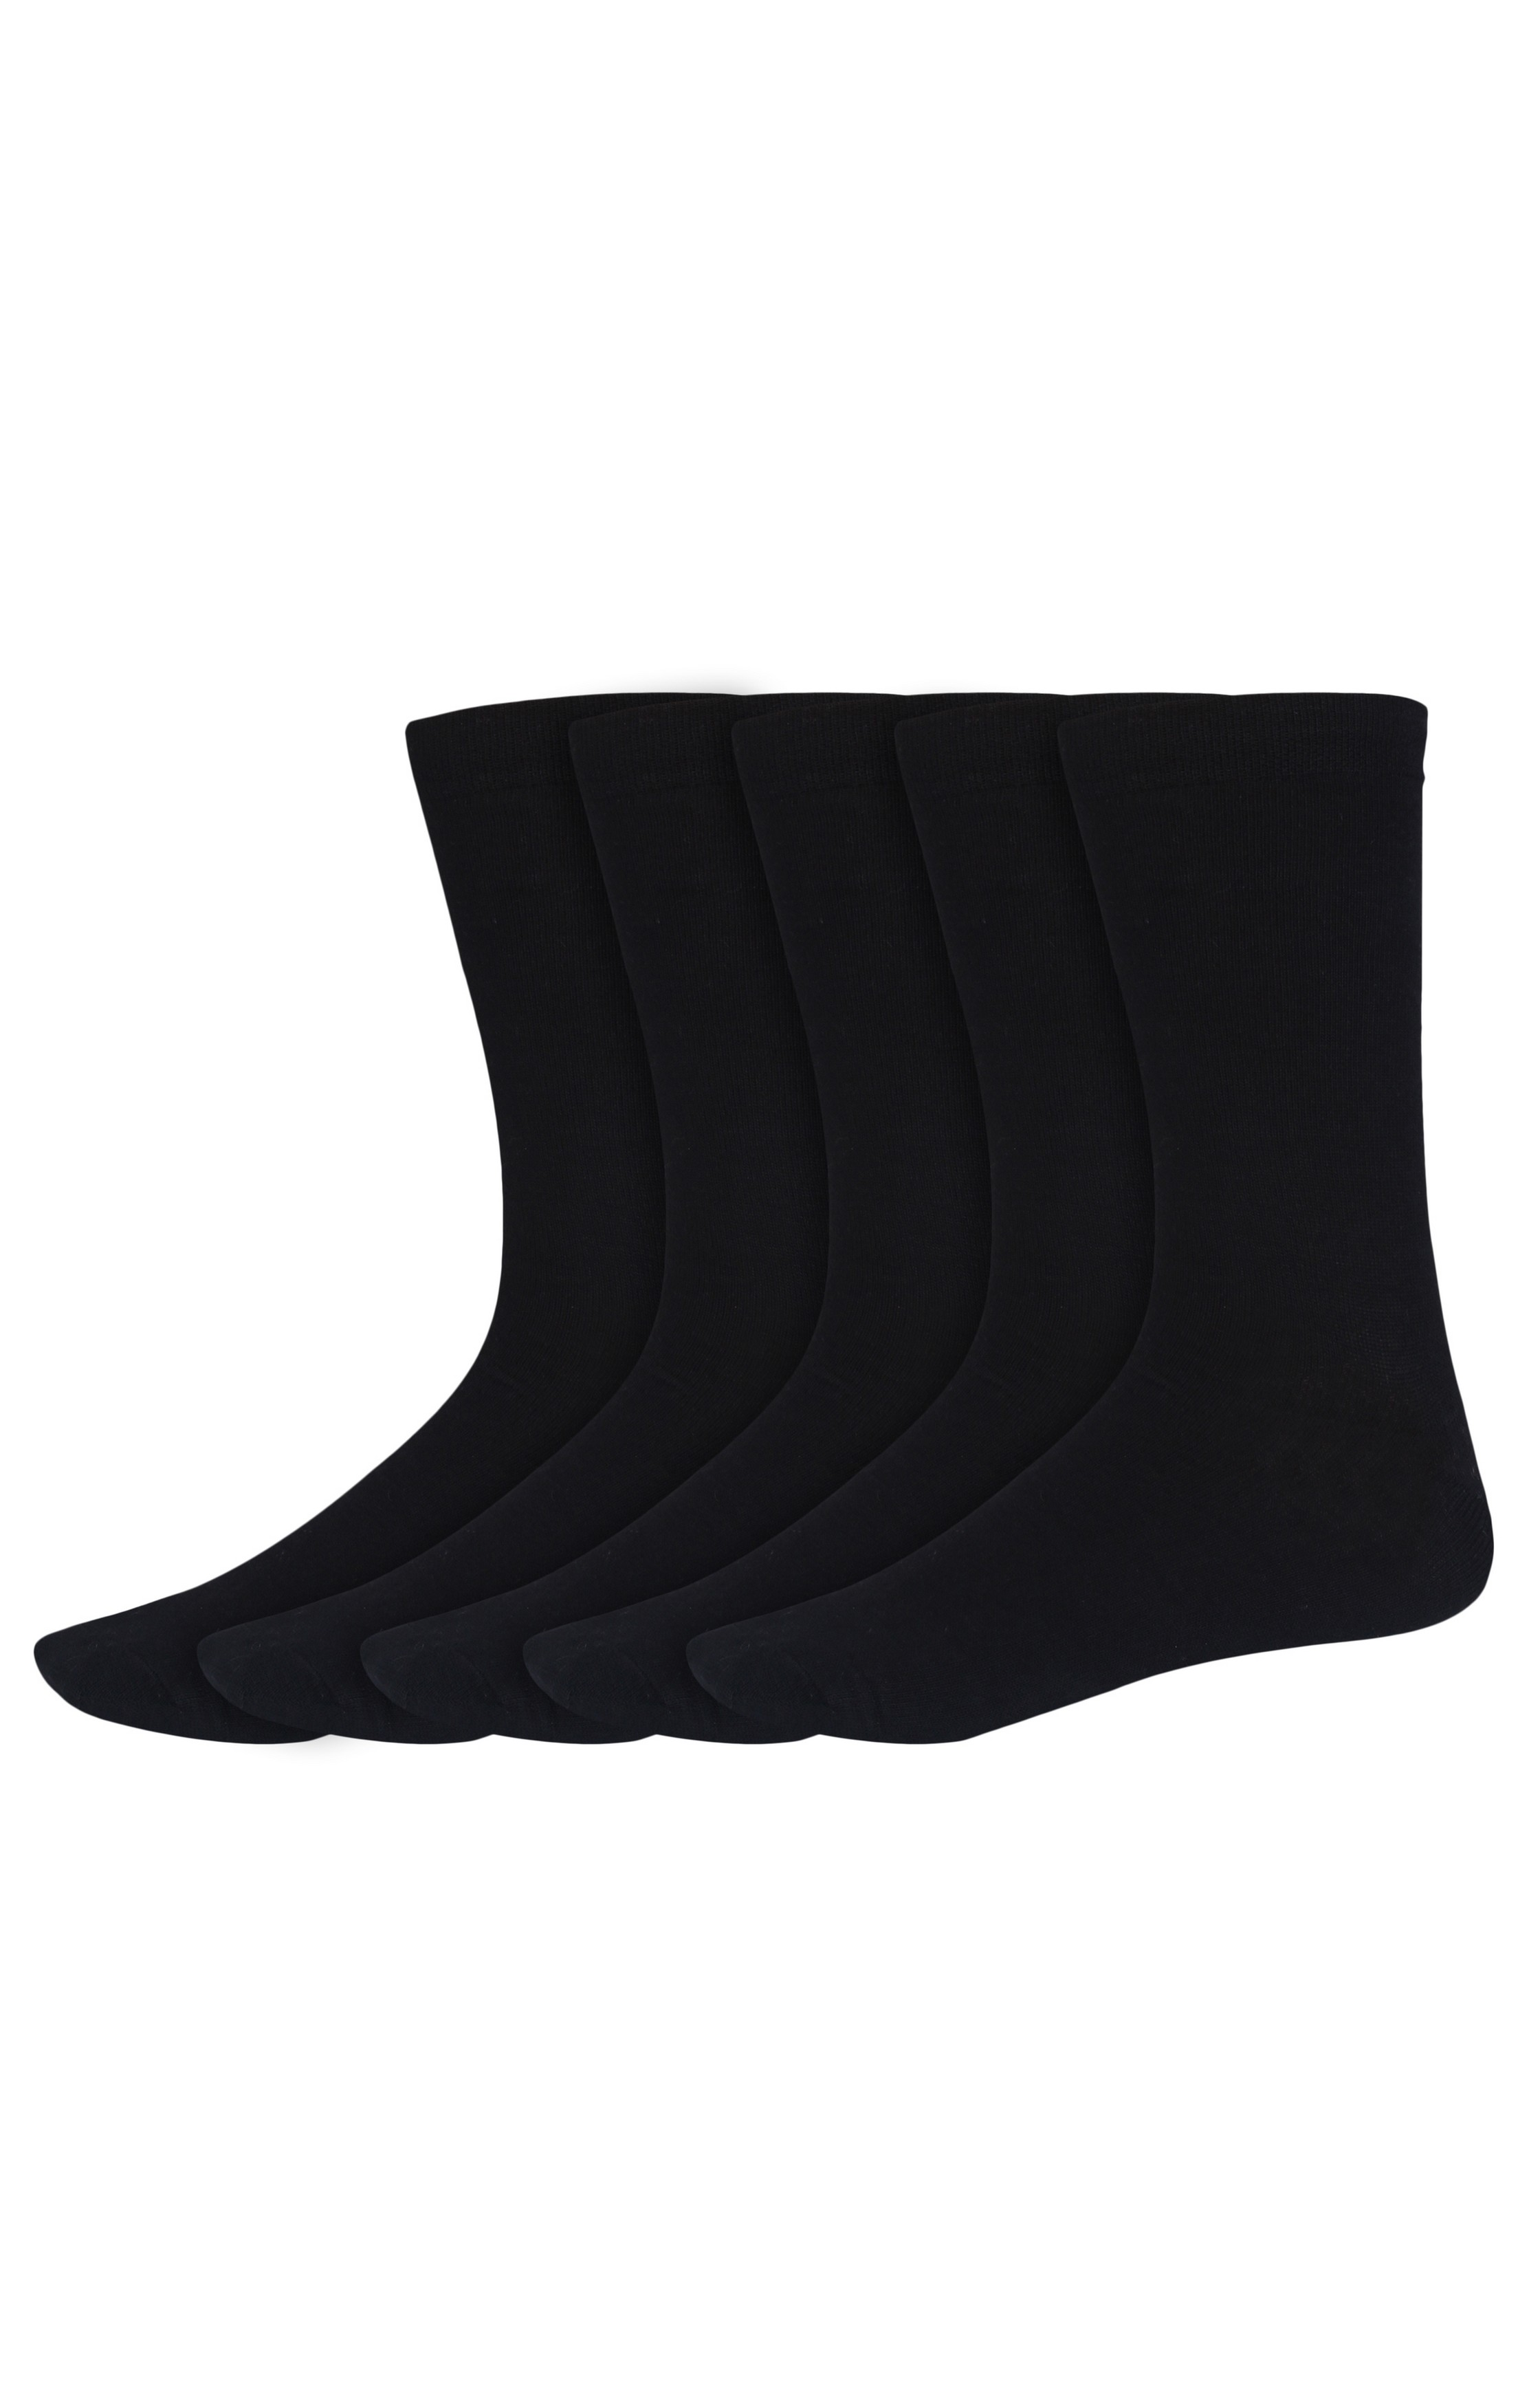 SIDEWOK | SIDEWOK Calf Length Solid Multicolour Cotton Socks for Men (Pack of 5 Pairs)